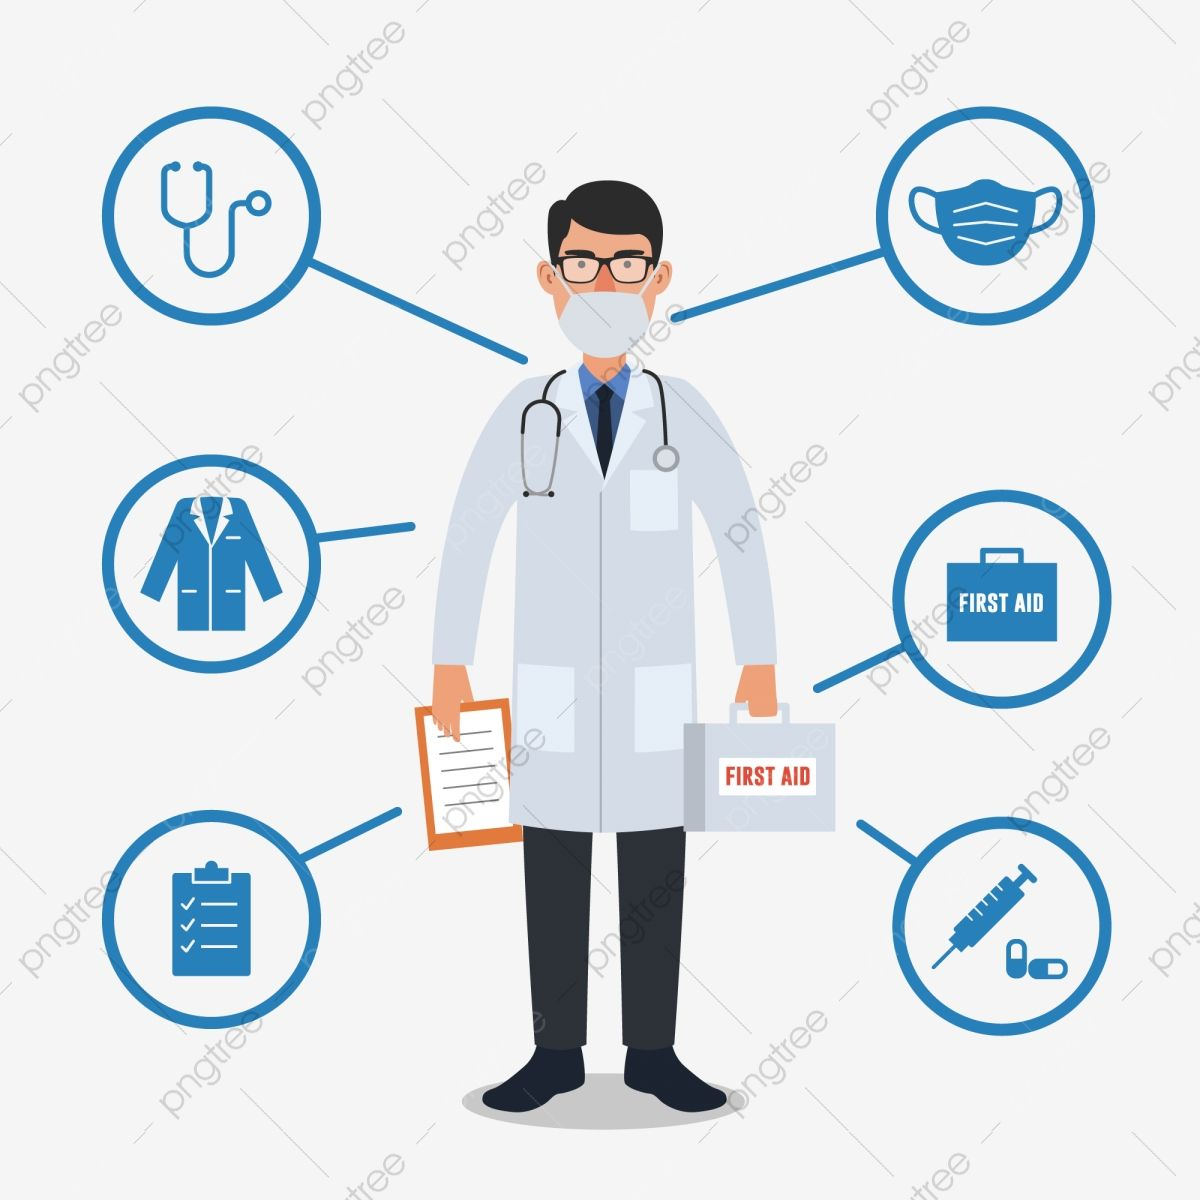 Doctor With Medical Equipment Stethoscope Doctor Clipart First Aid Box Injection Png And Vector With Transparent Background For Free Download Logo Design Free Templates Medical Equipment Logo Design Free